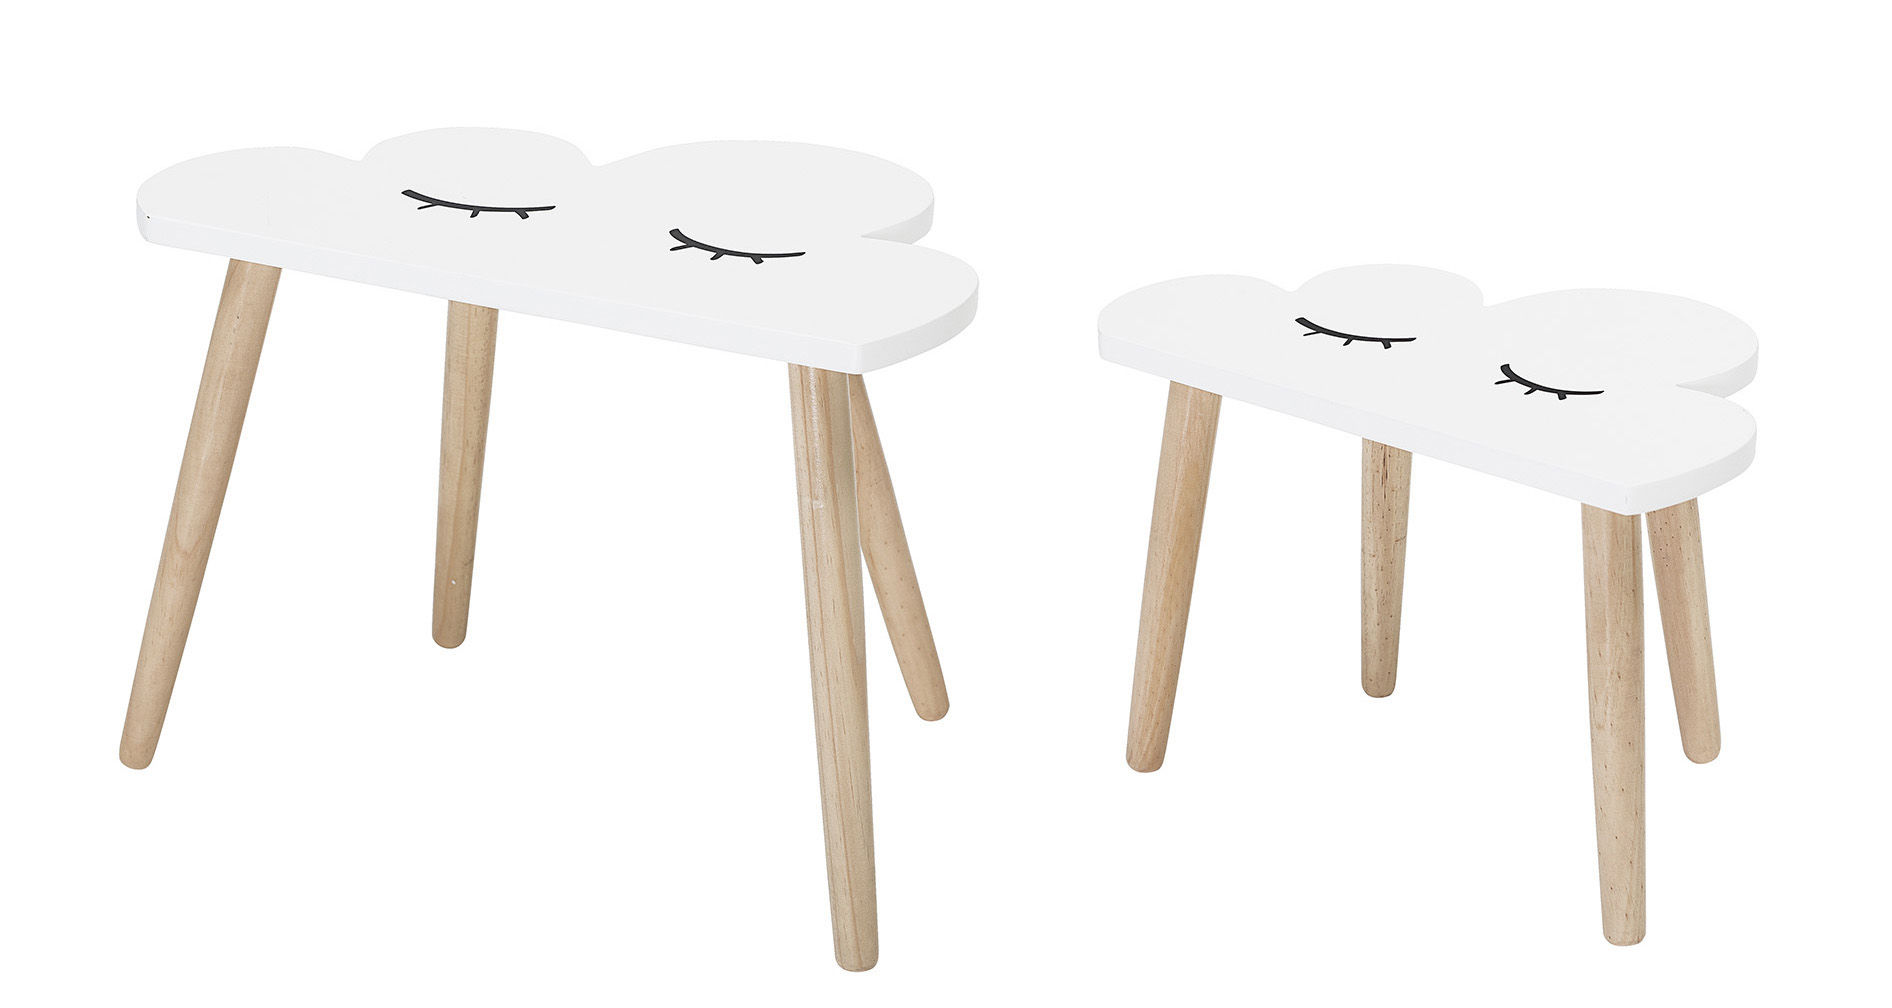 Furniture - Coffee Tables - Nuage Nested tables - / Set of 2 by Bloomingville - White & wood - Lacquered MDF, Solid pine